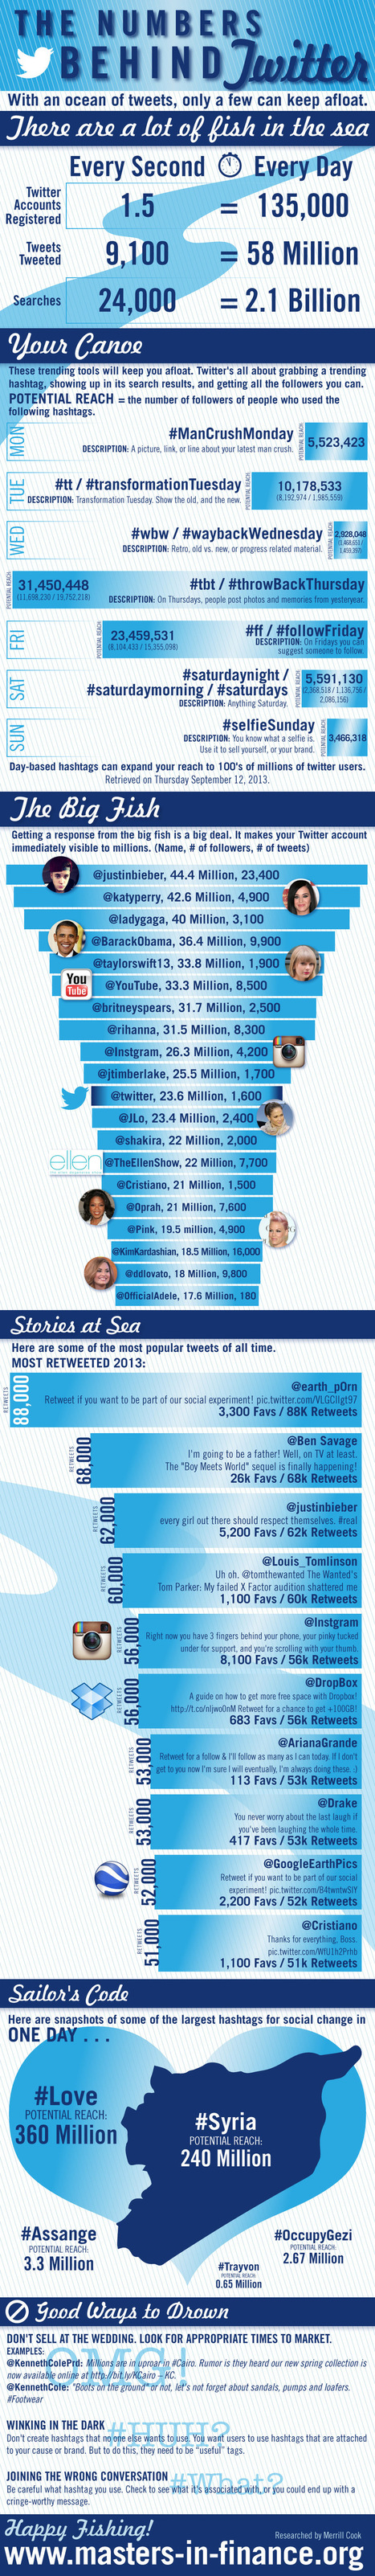 The Numbers Behind Twitter #infographic | MarketingHits | Scoop.it